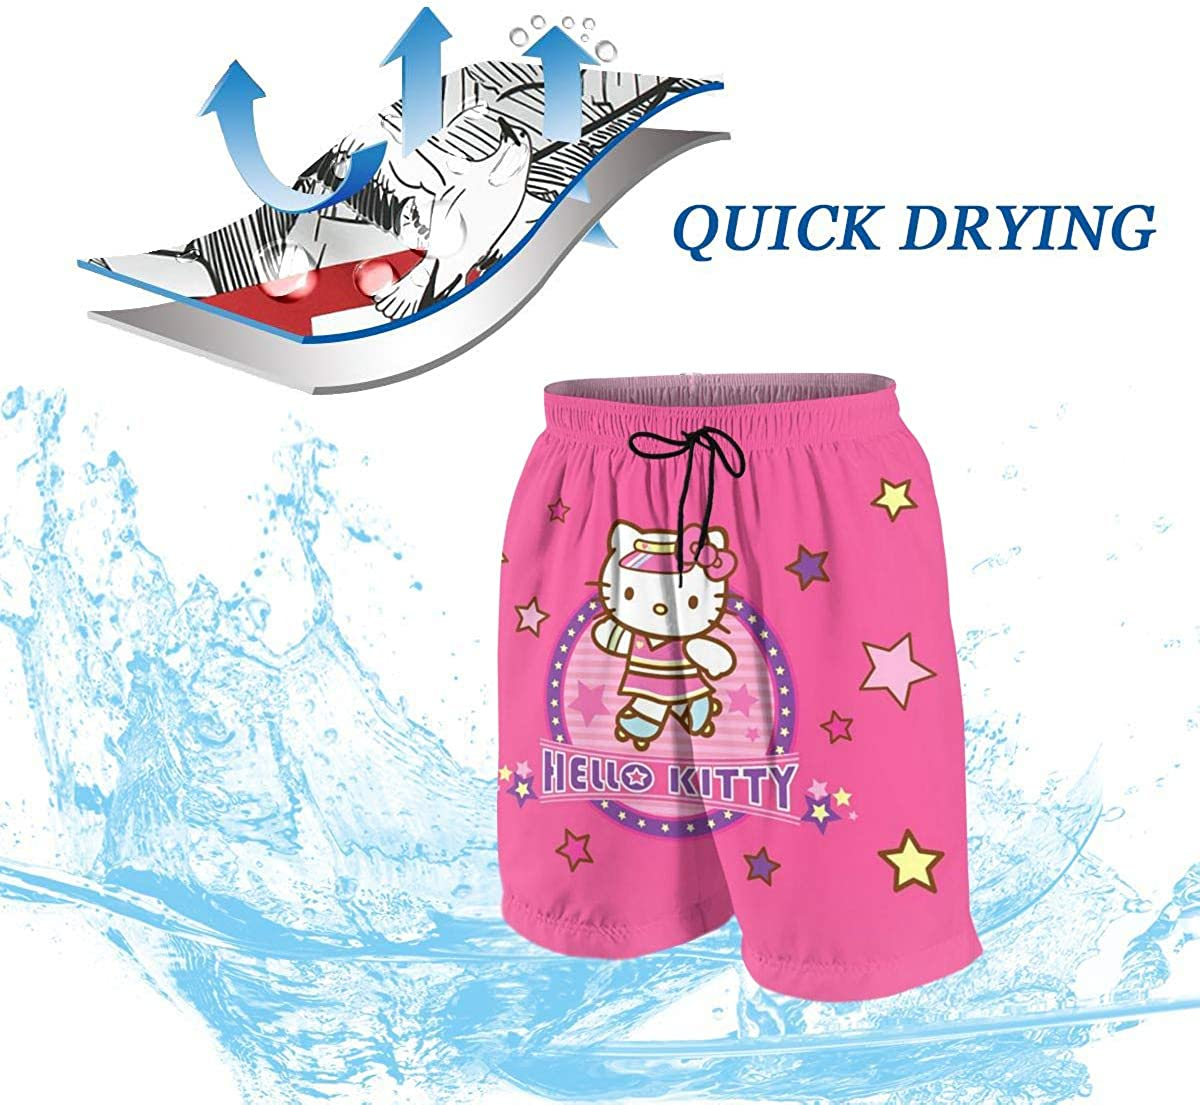 Swim Trunks Pink Hello Kitty Quick Dry Beach Board Shorts Bathing Suit with Side Pockets for Teen Boys